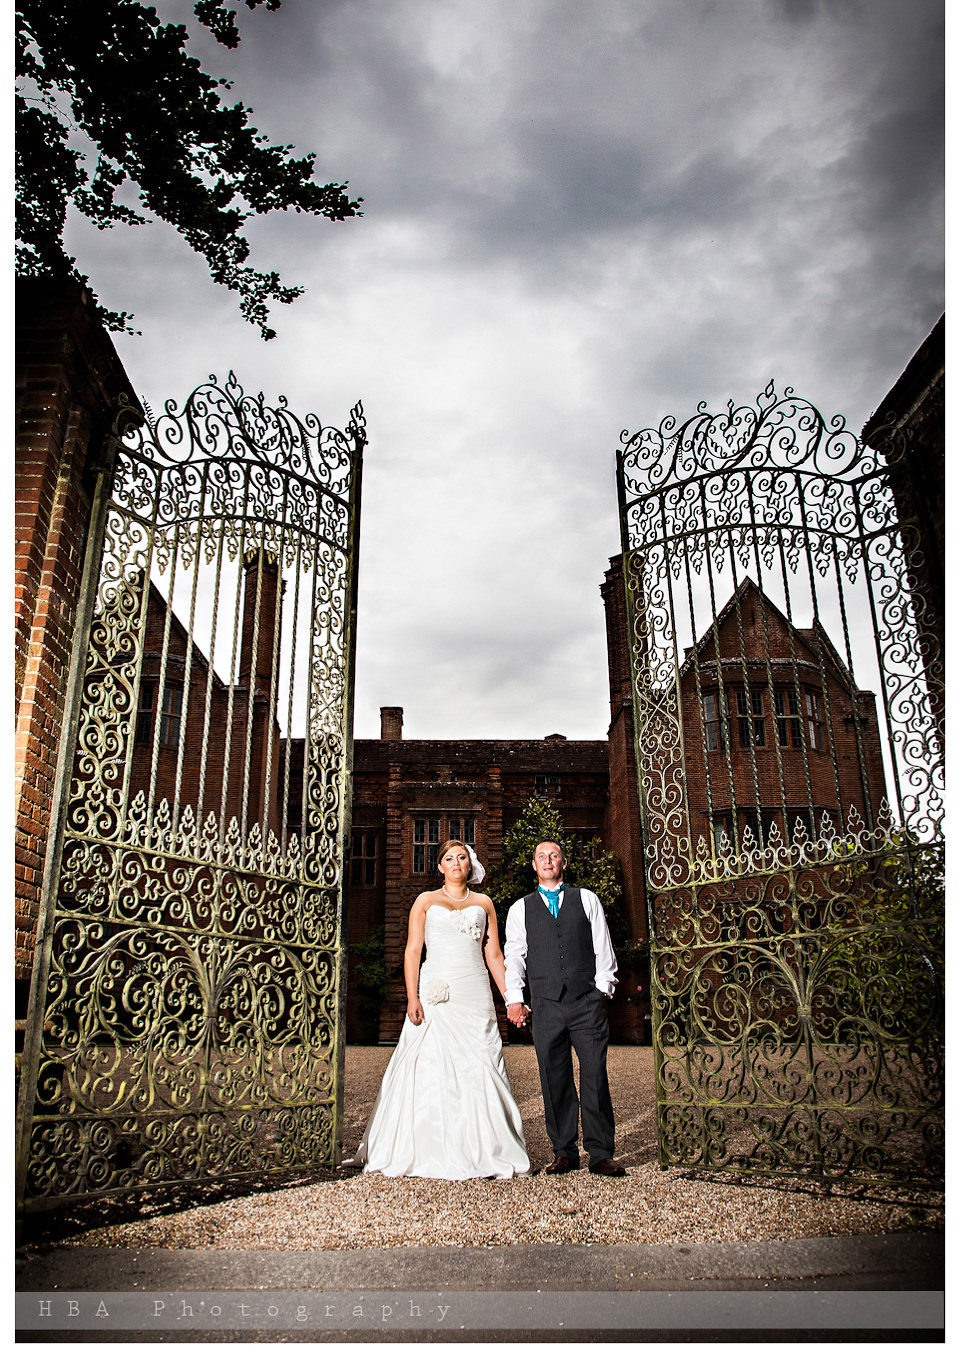 The wedding of Sam & Alan at New Place, Southampton. By contemporary photographers HBA Photography. A bit of drama by the gates of New Place